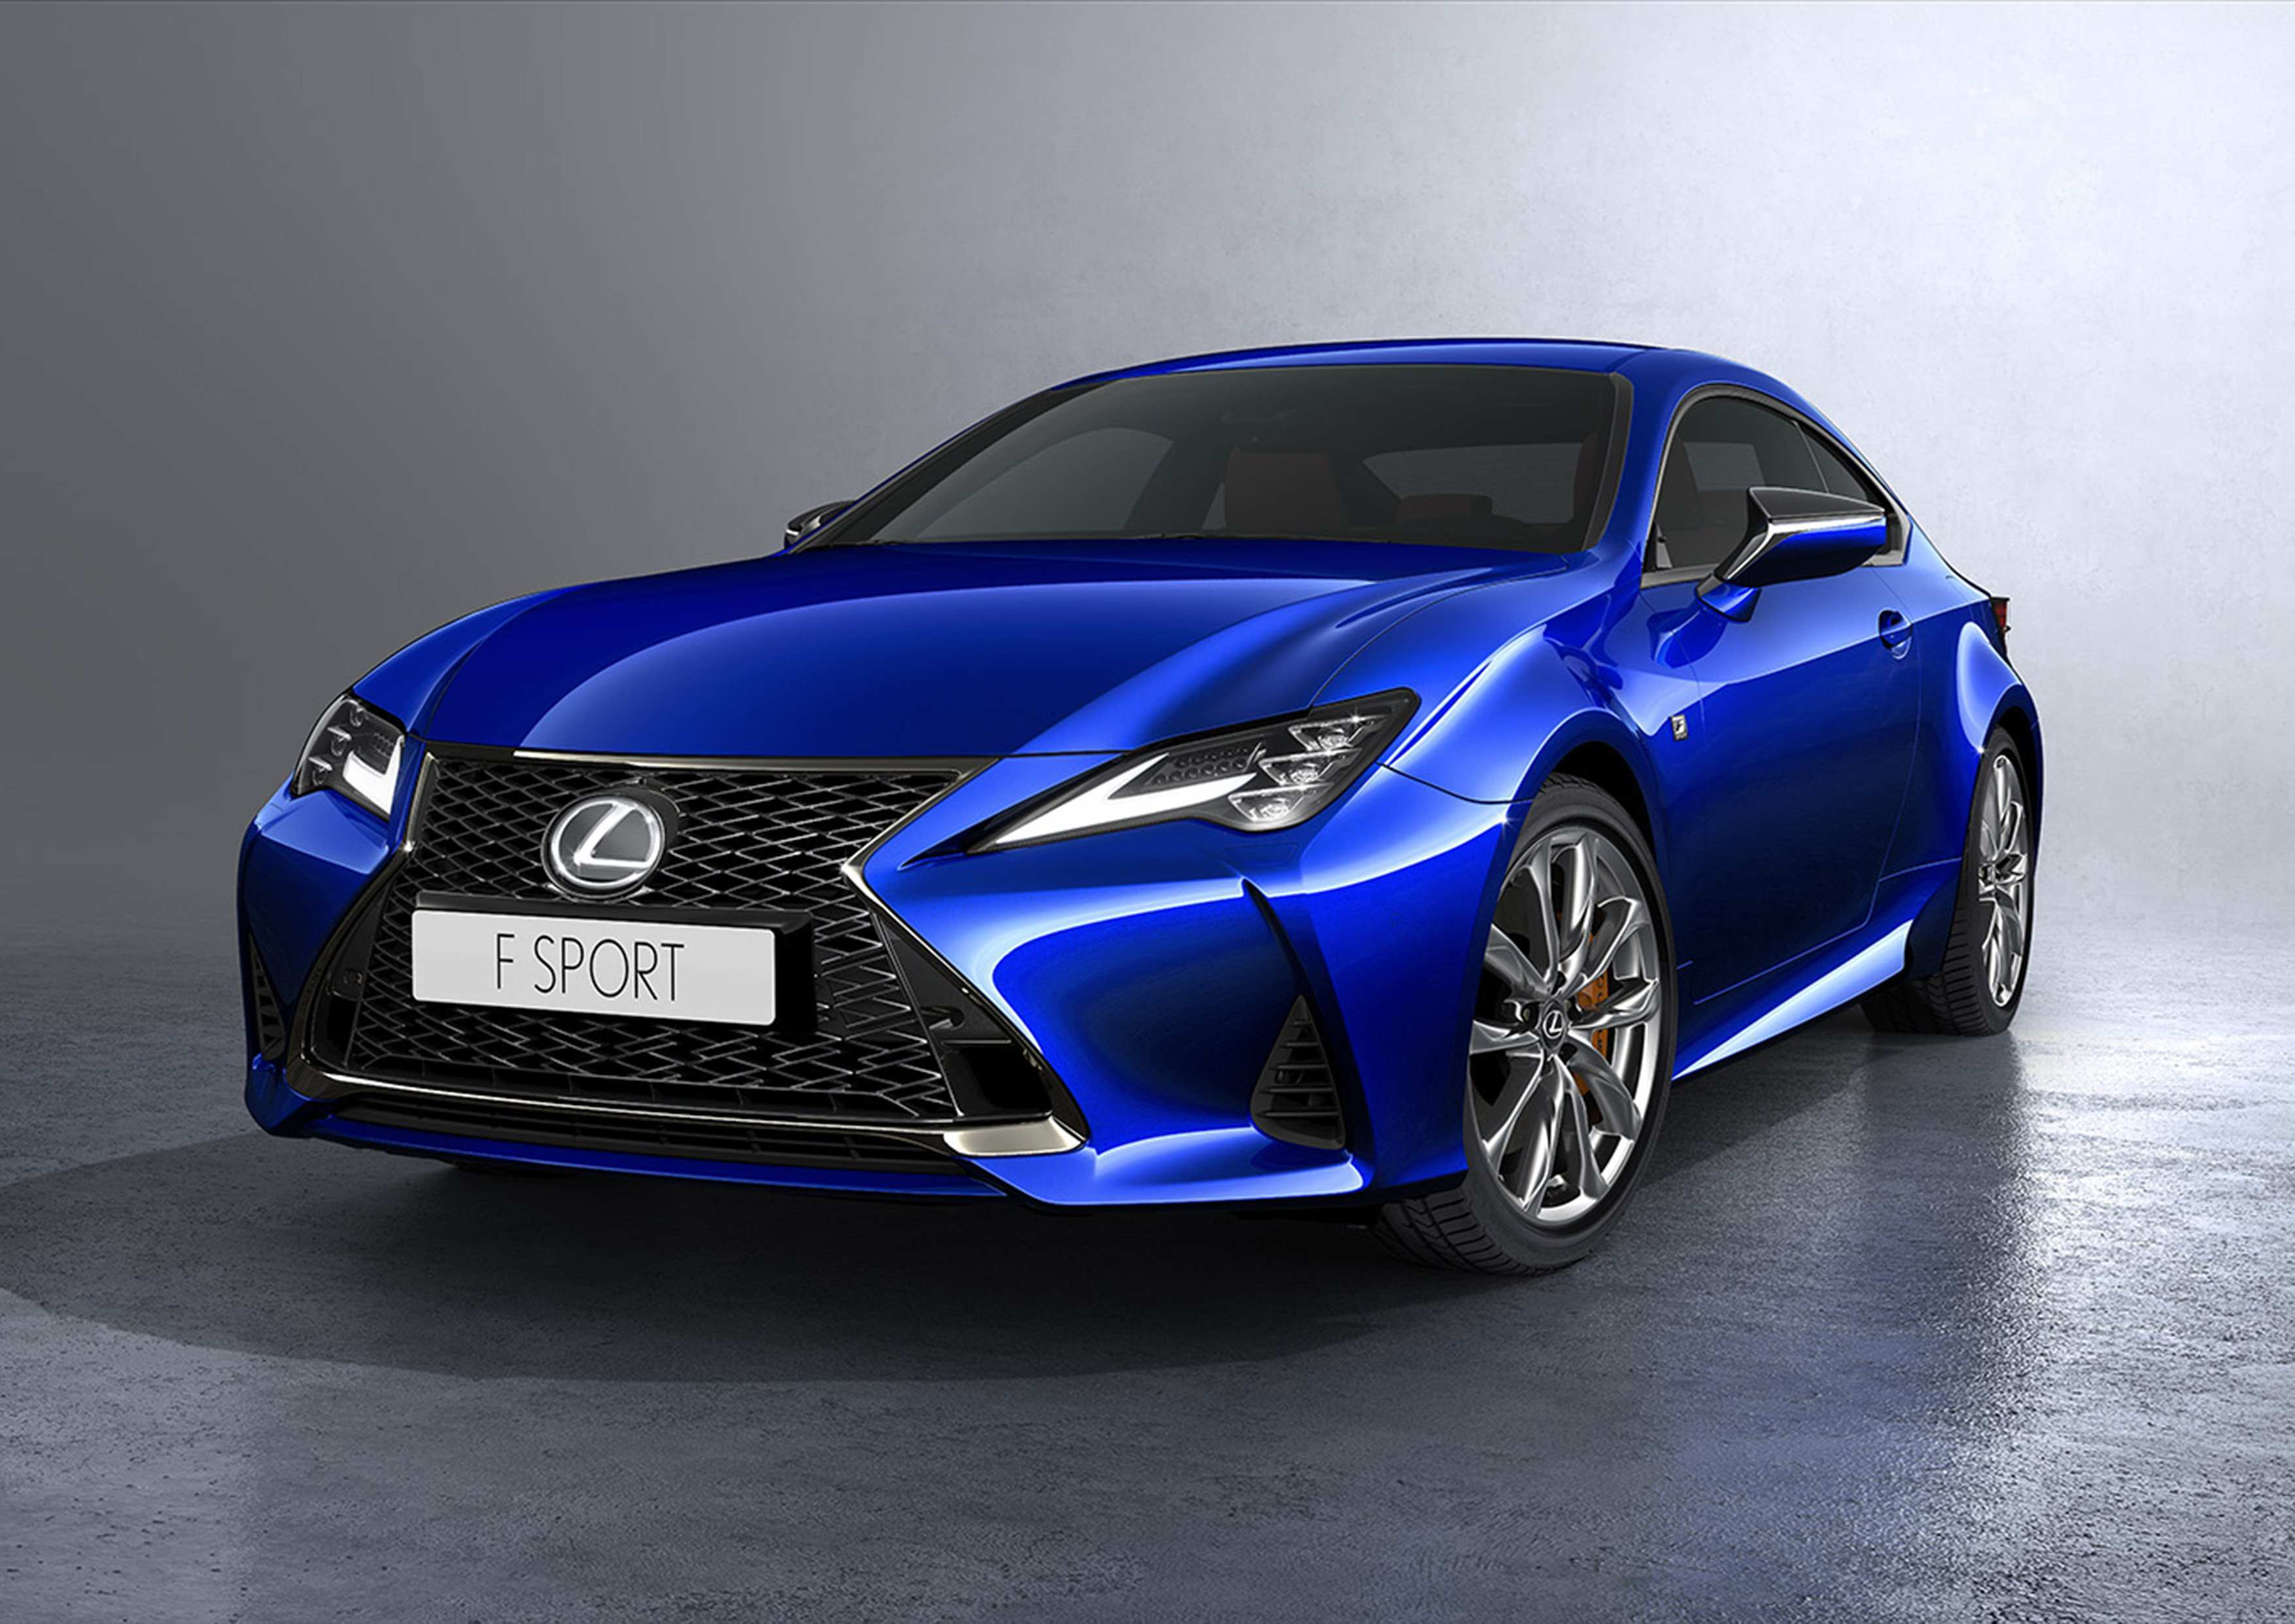 90 The Rcf Lexus 2020 Model with Rcf Lexus 2020